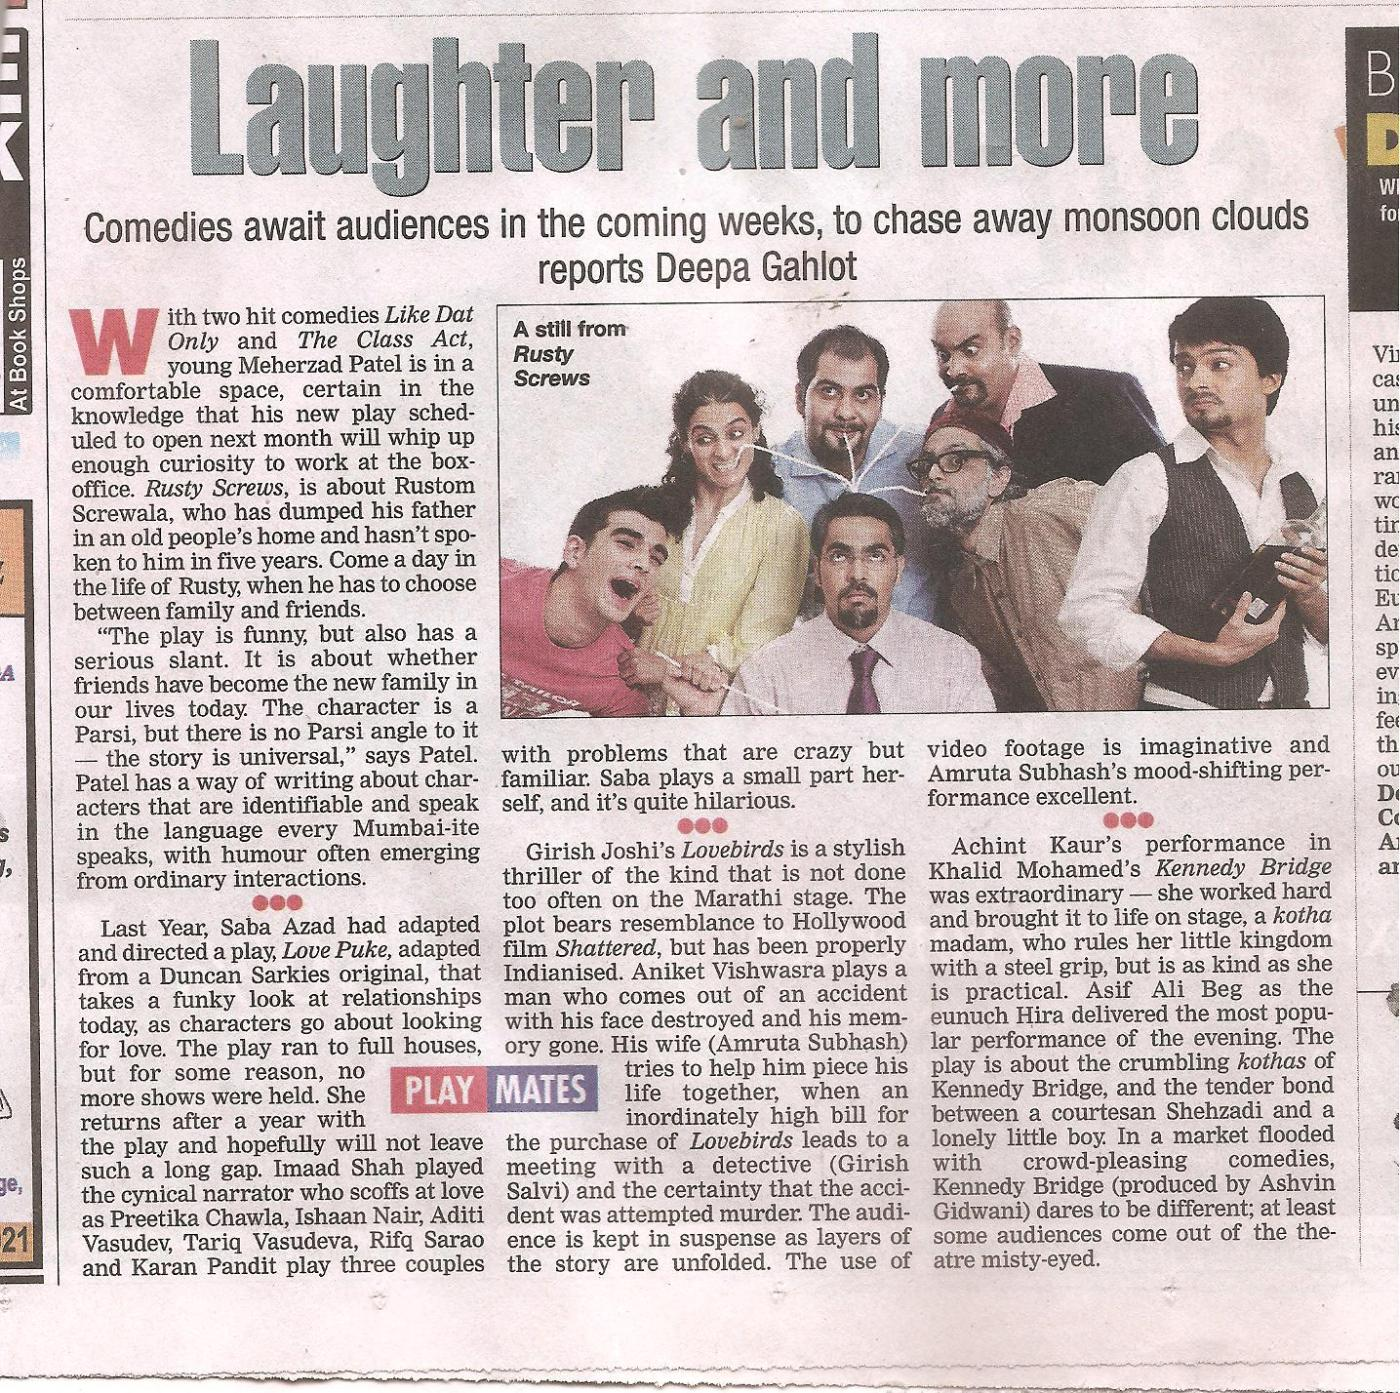 Bombay Times 2011